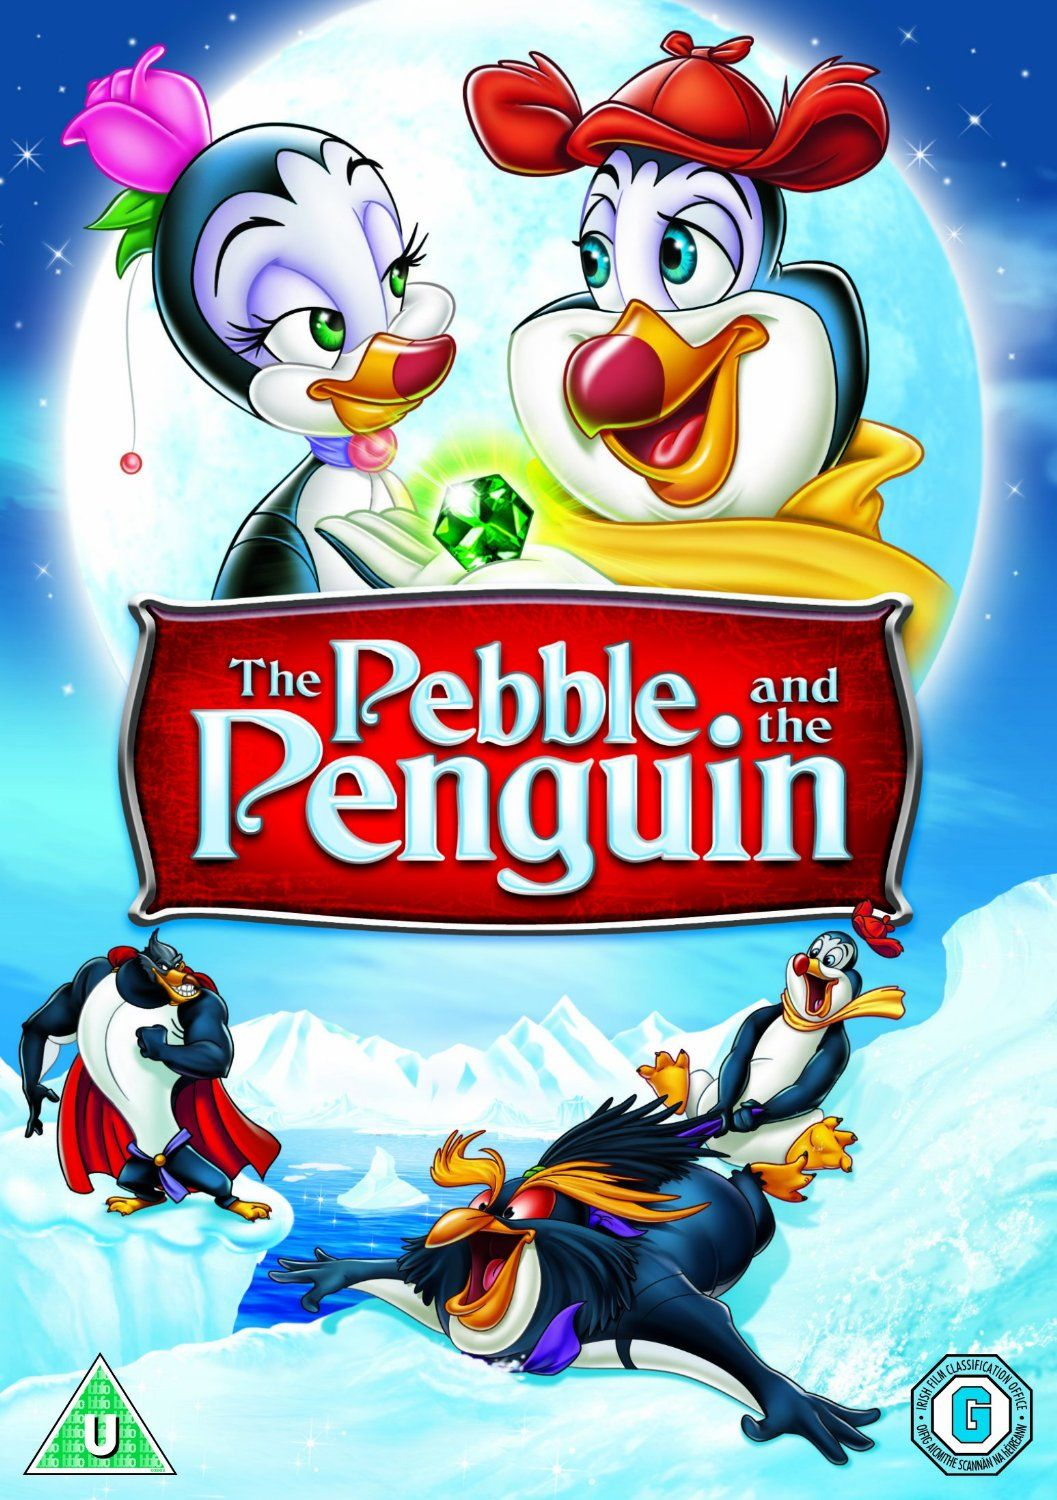 The Pebble And The Penguin (1995) Animated movie posters